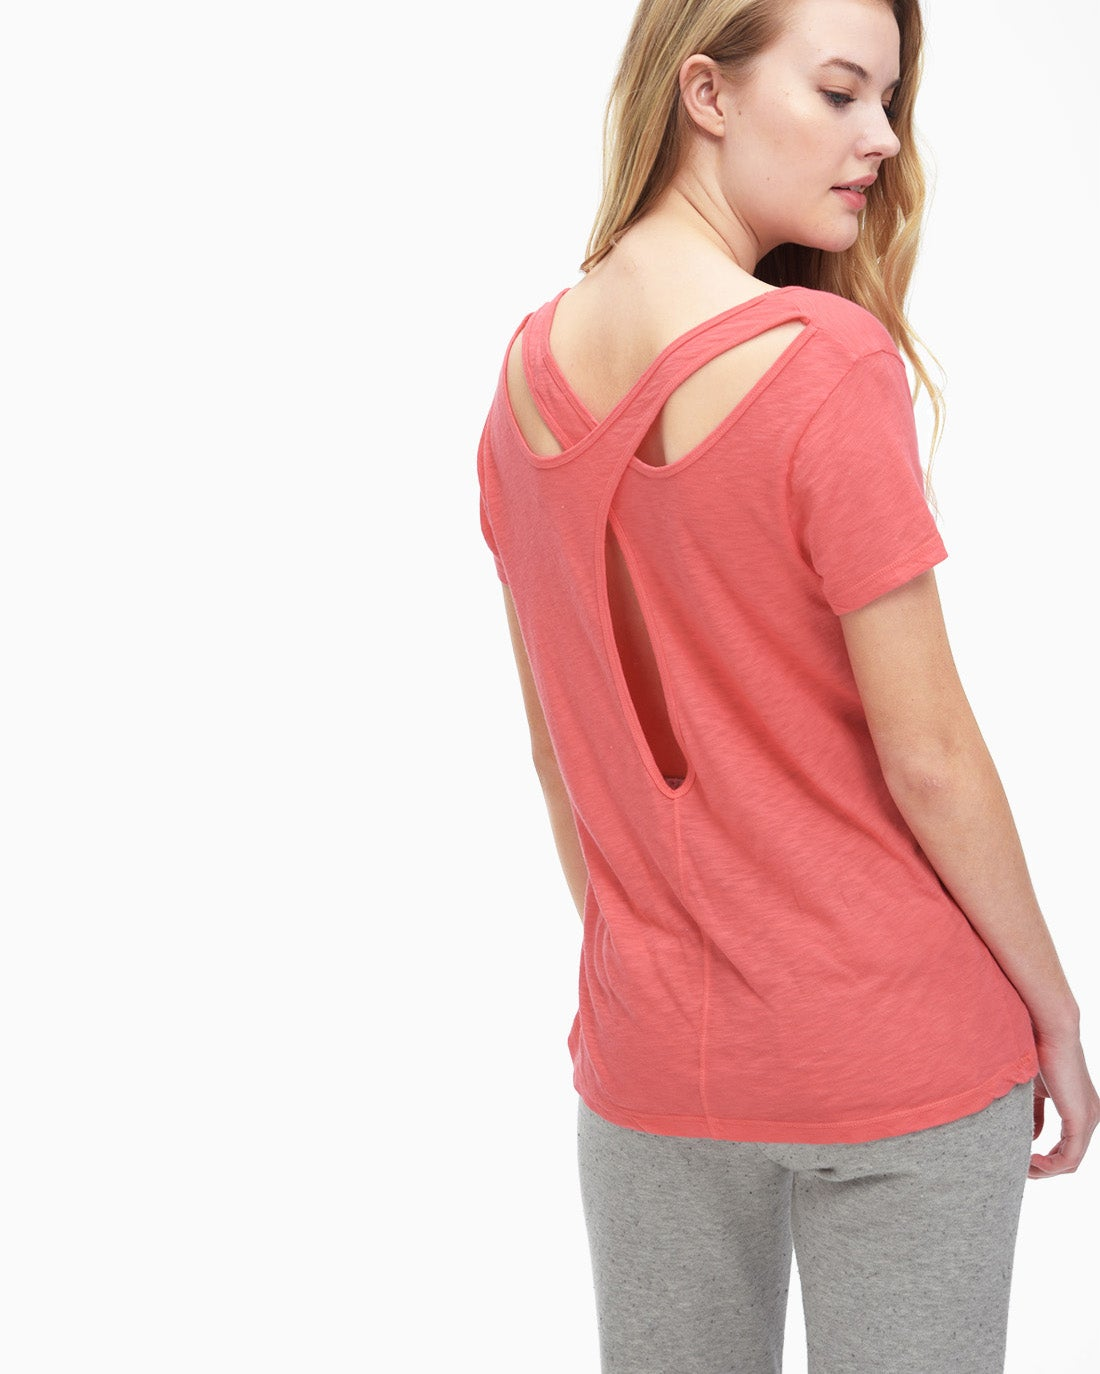 Splendid Women's Slub Cutout Tee